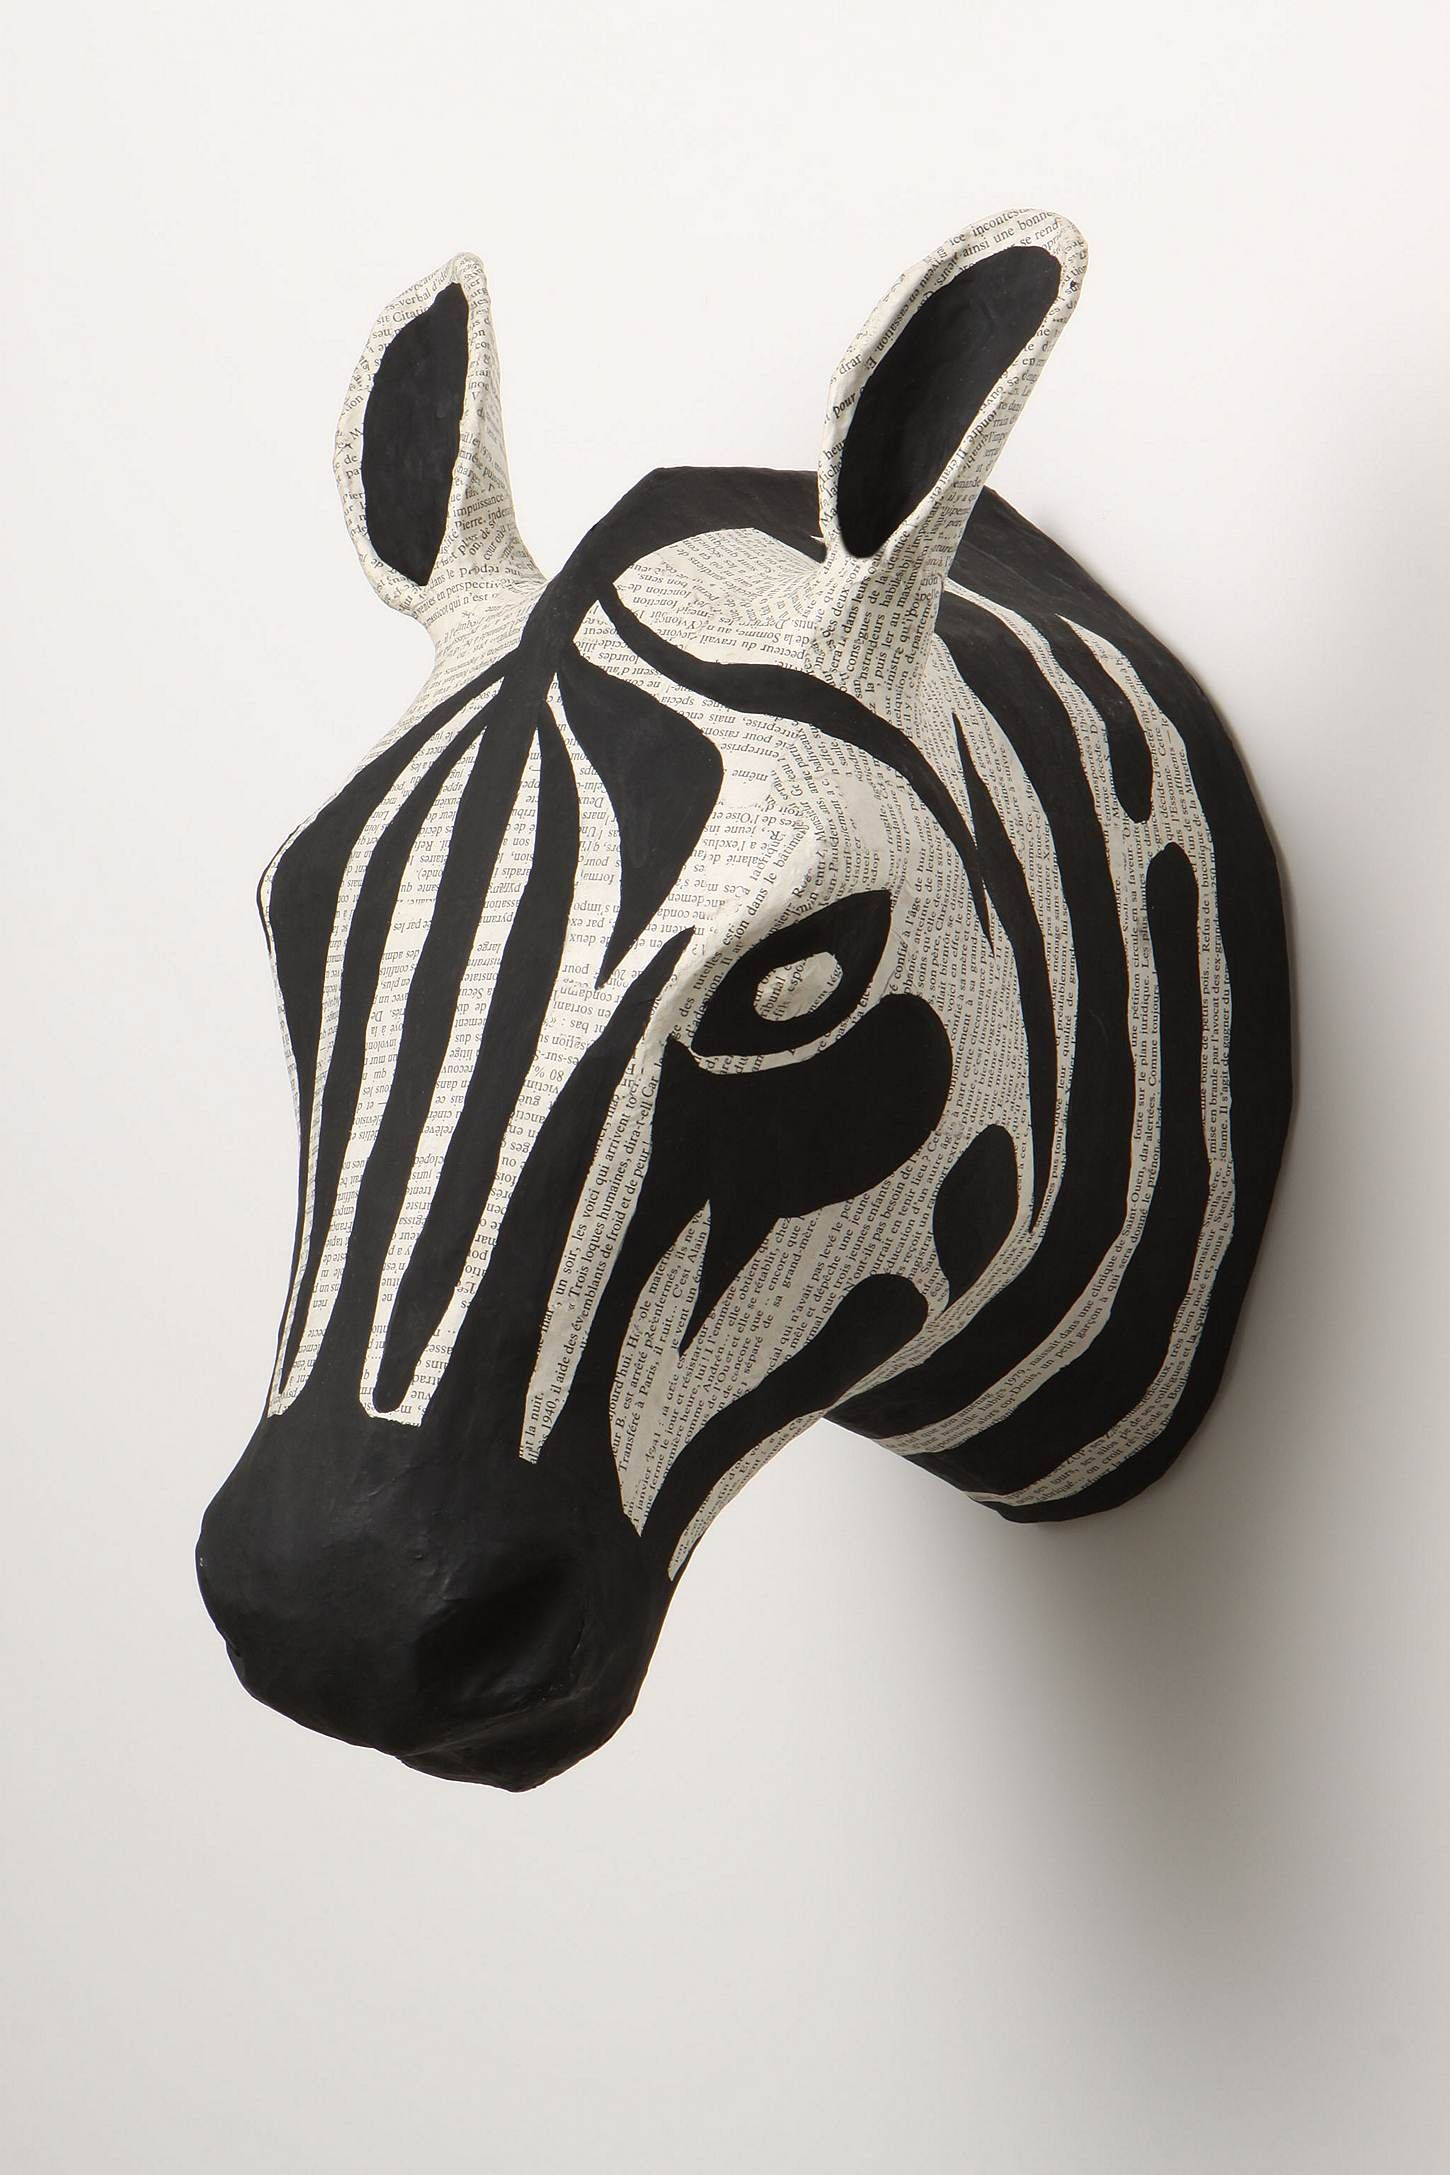 Cool zebra sculpture from Anthropologie